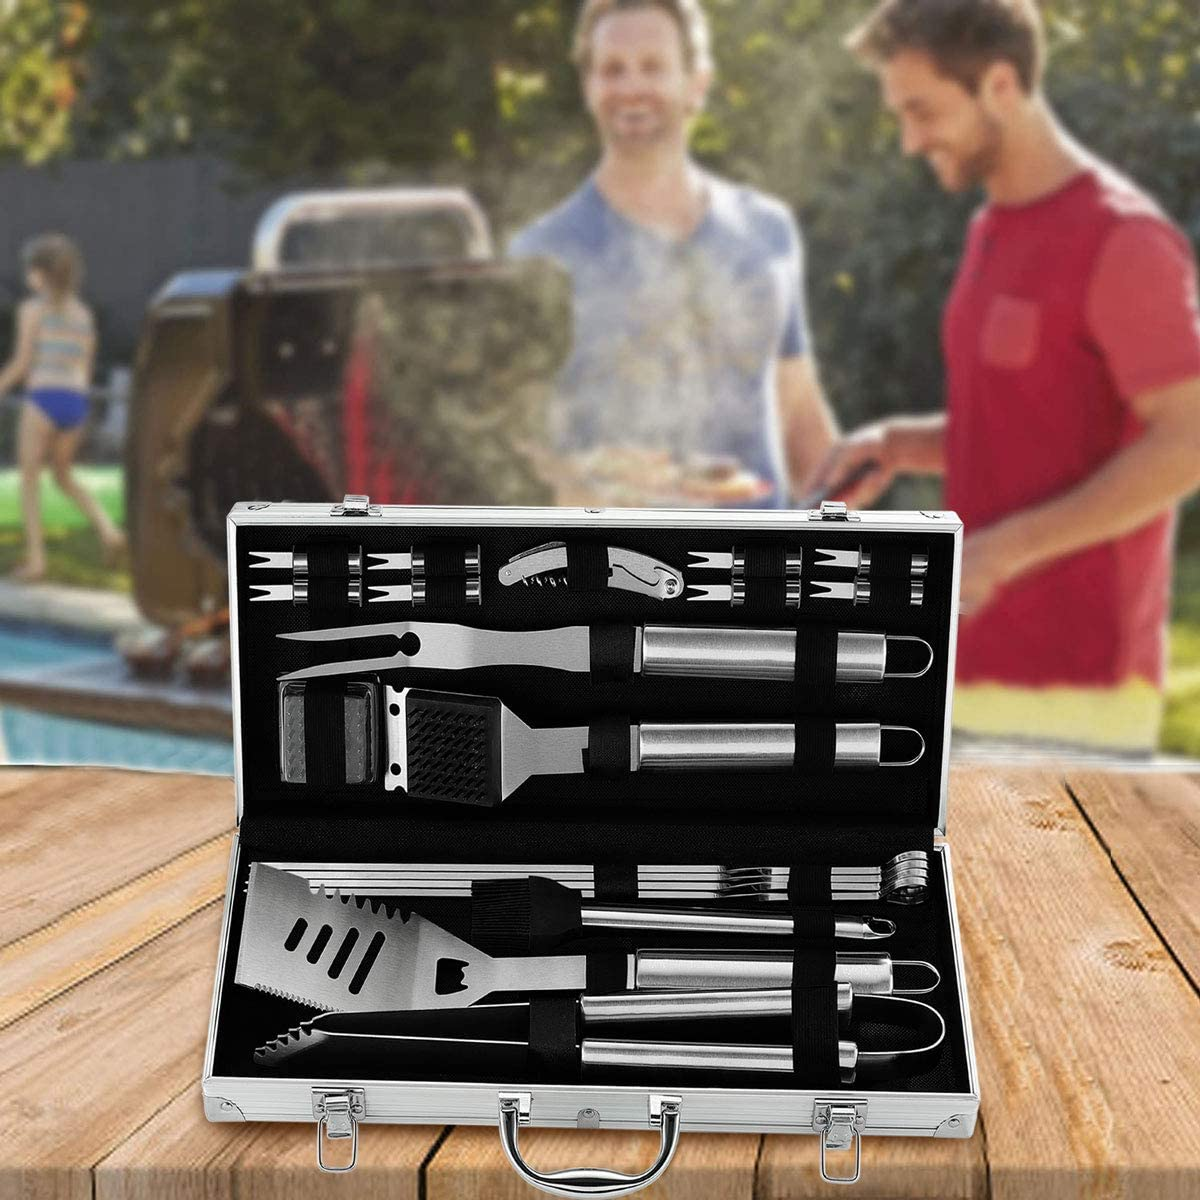 grilljoy 20PCS Heavy Duty BBQ Grill Tools Set - Extra Thick Stainless Steel Spatula, Fork& Tongs. Complete Barbecue Accessories Kit in Aluminum Storage Case - Perfect Grilling Tool Set Gift : Garden & Outdoor